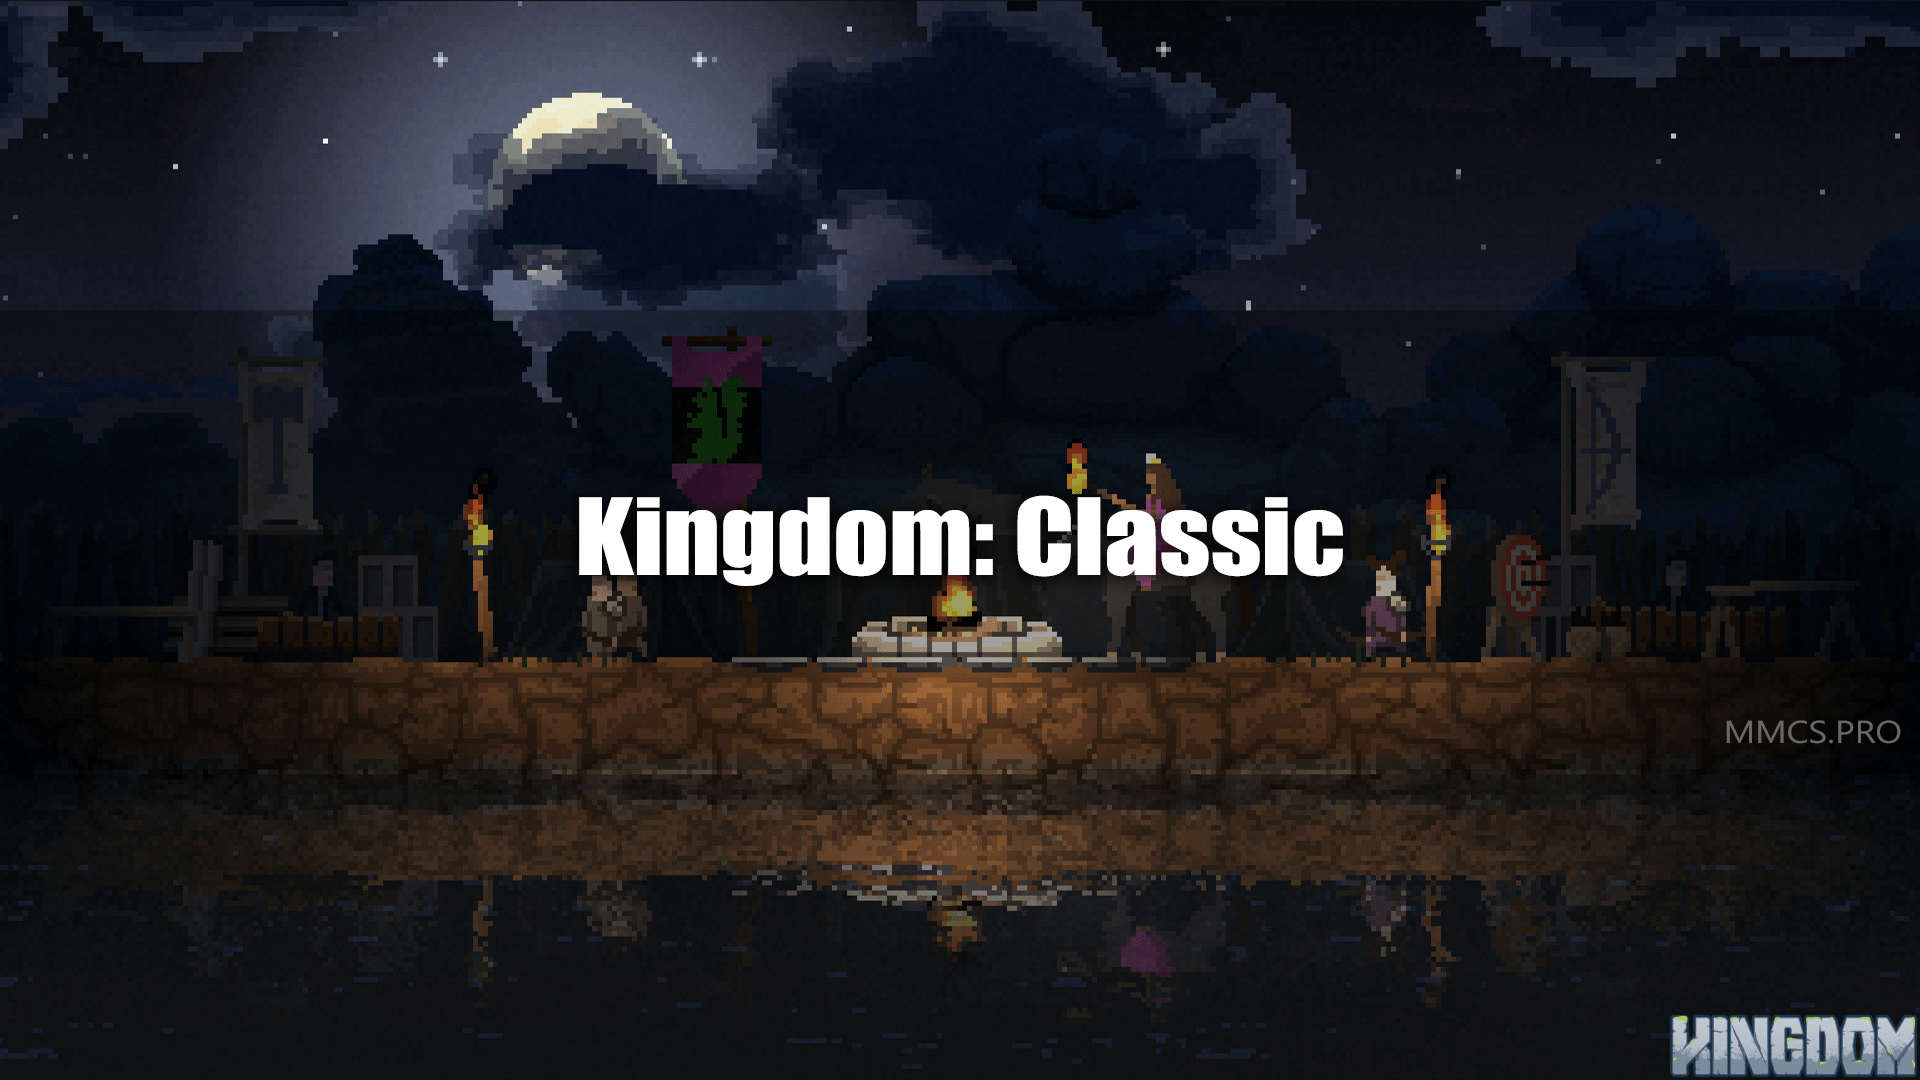 https://mmcs.pro/kingdom-classic-on-steam/